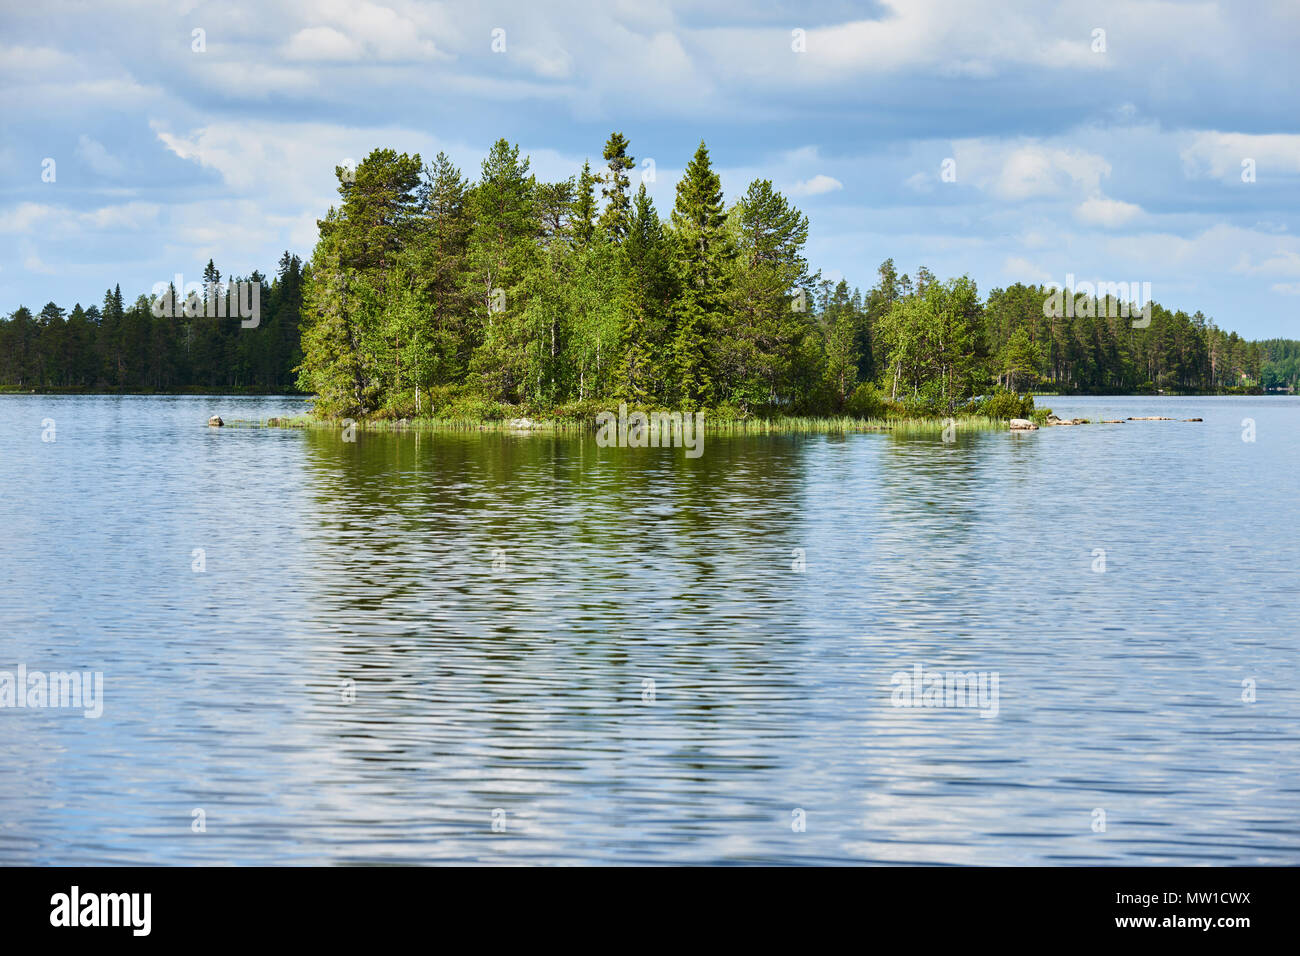 Relaxing Finnish landscape,  with lake, forest, trees, sky and clouds - Stock Image